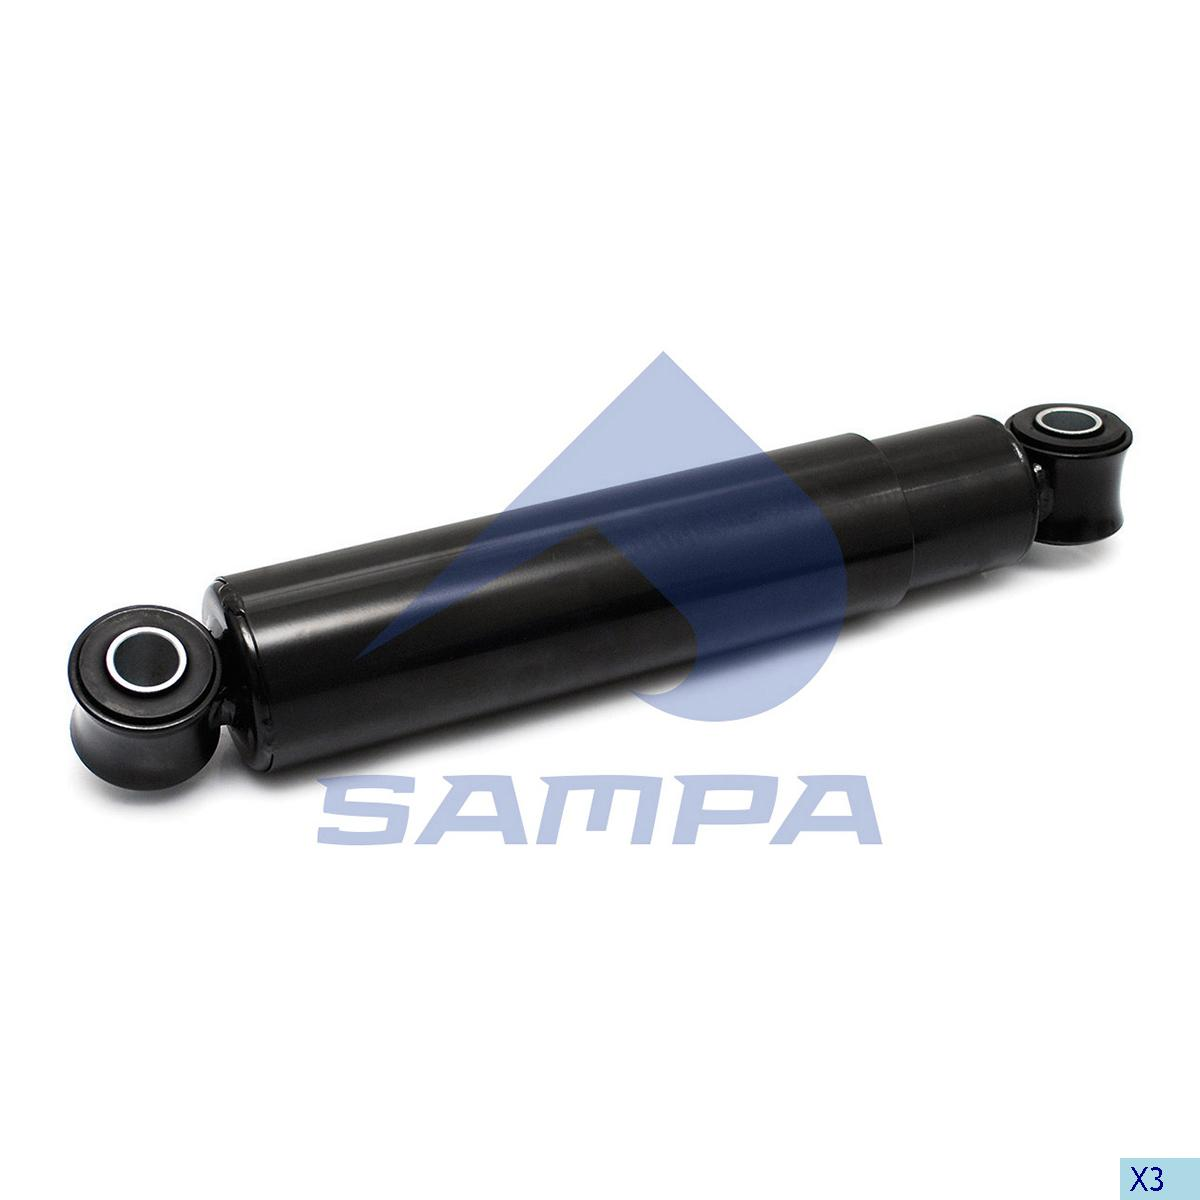 Shock Absorber, Sauer, Suspension